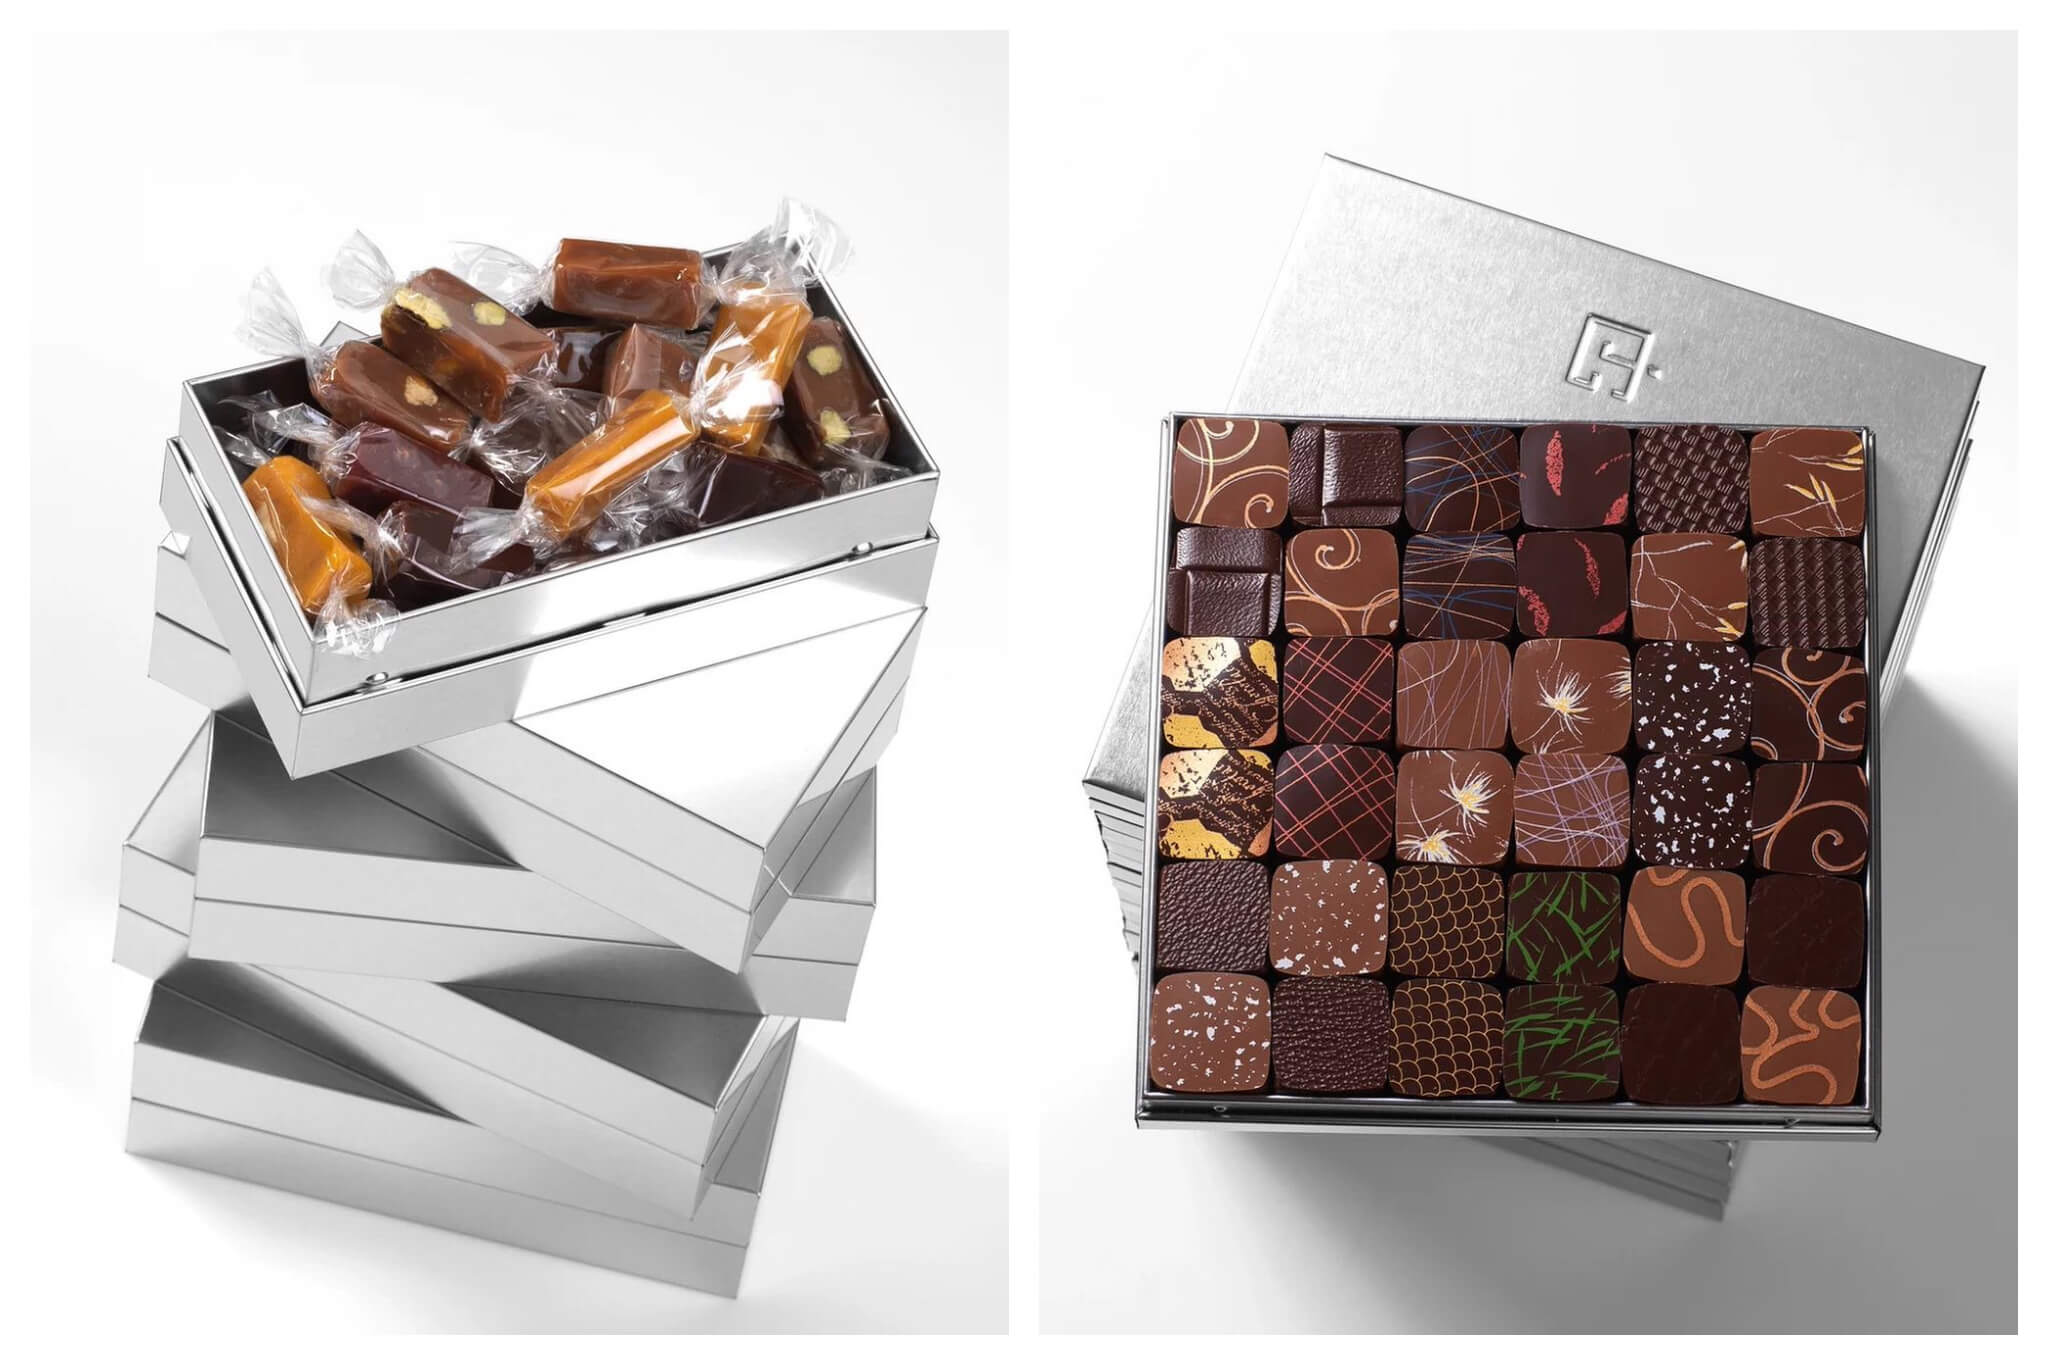 Left: singularly wrapped chocolates in a silver box by Jacques Genin. Right: decorated chocolates in a silver box by Jacques Genin.